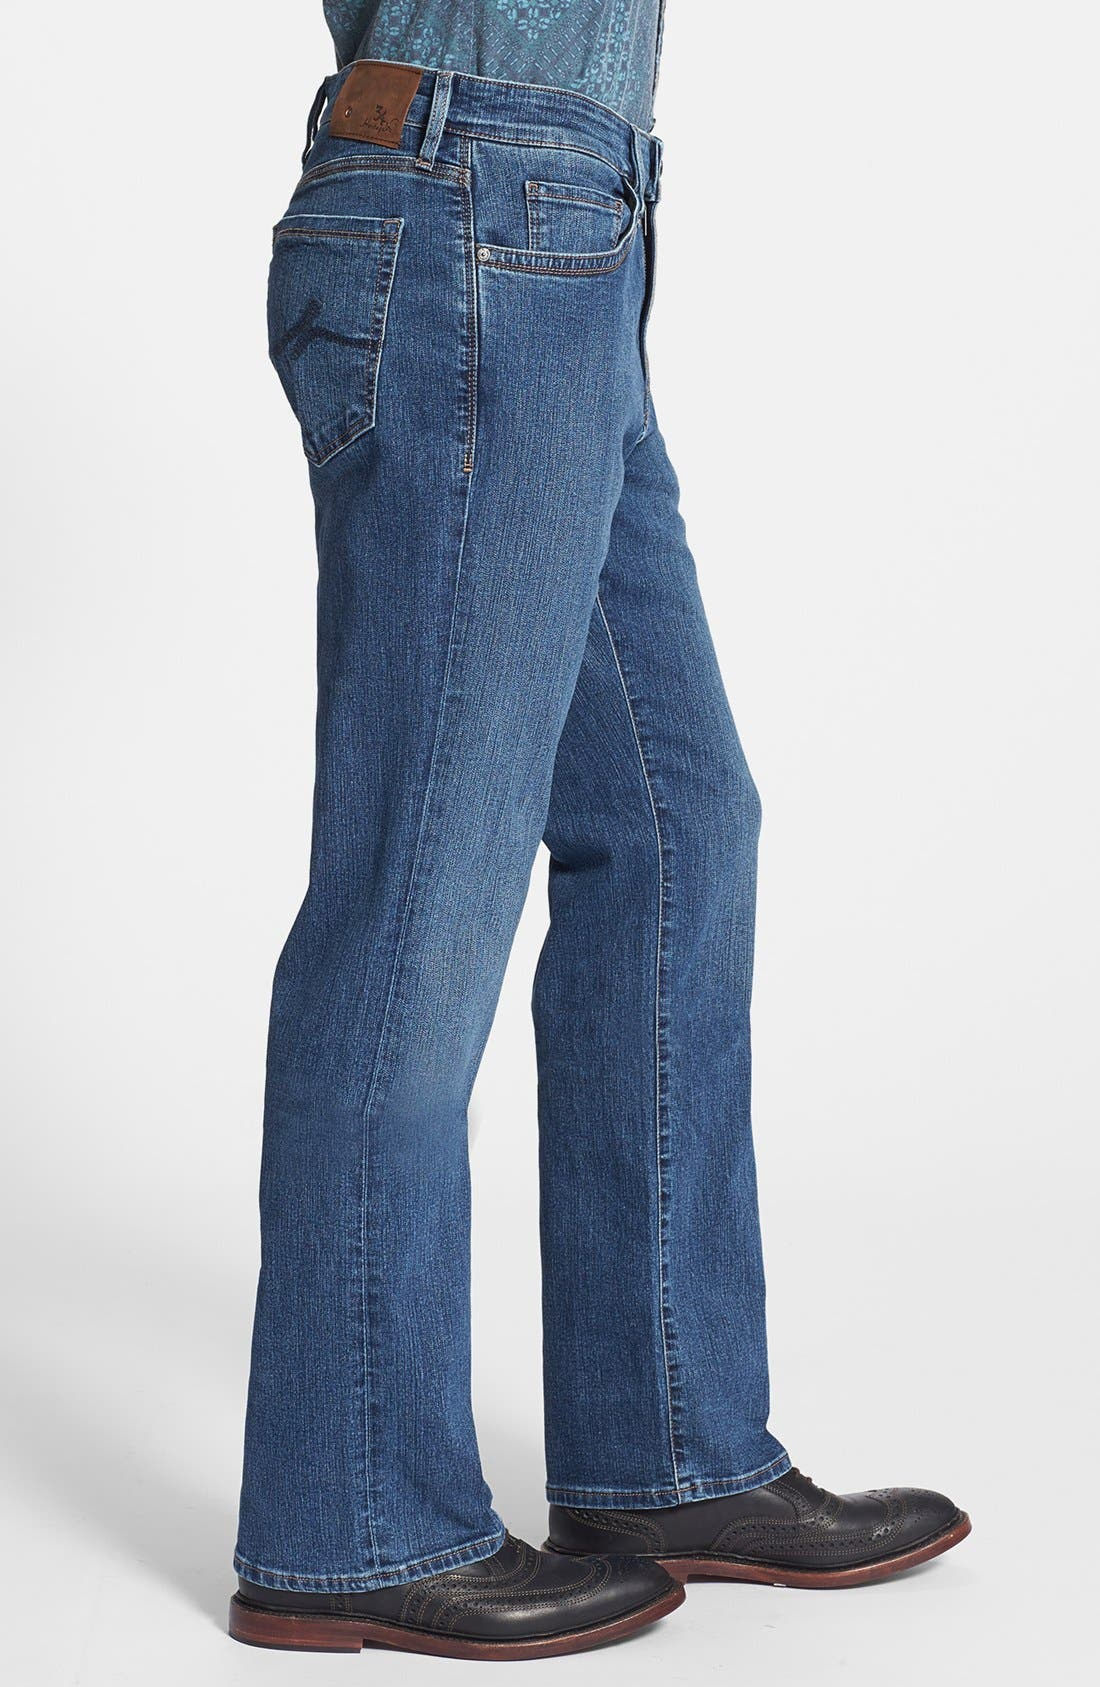 34 HERITAGE,                             'Charisma' Classic Relaxed Fit Jeans,                             Alternate thumbnail 3, color,                             MID COMFORT